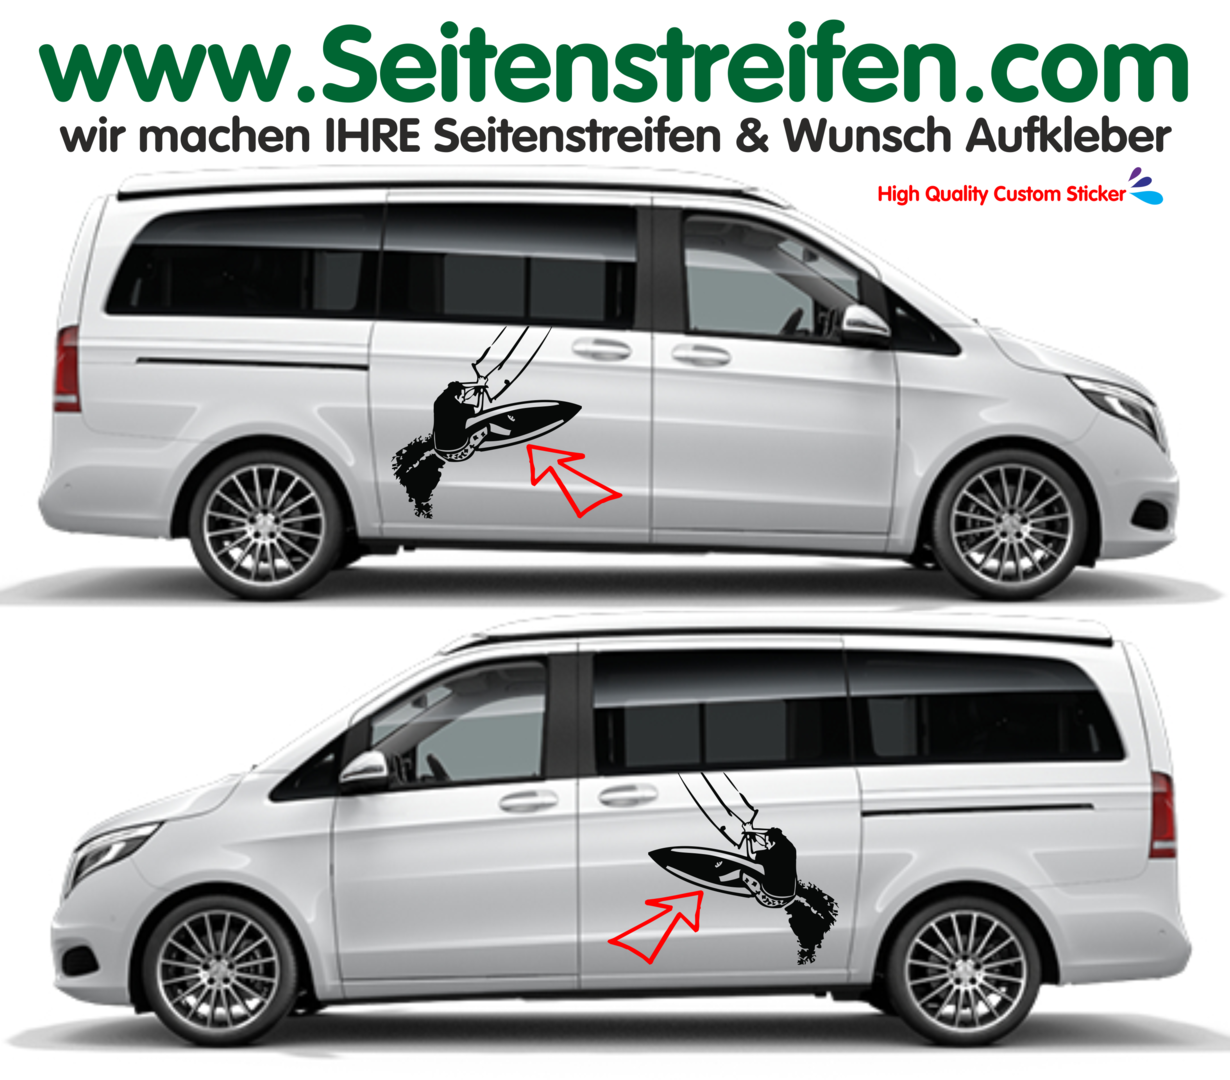 Mercedes Benz Class V - 447/693/638 XXL Kitesurf Side Stripes Graphics Decals Sticker Kit - N° 9505